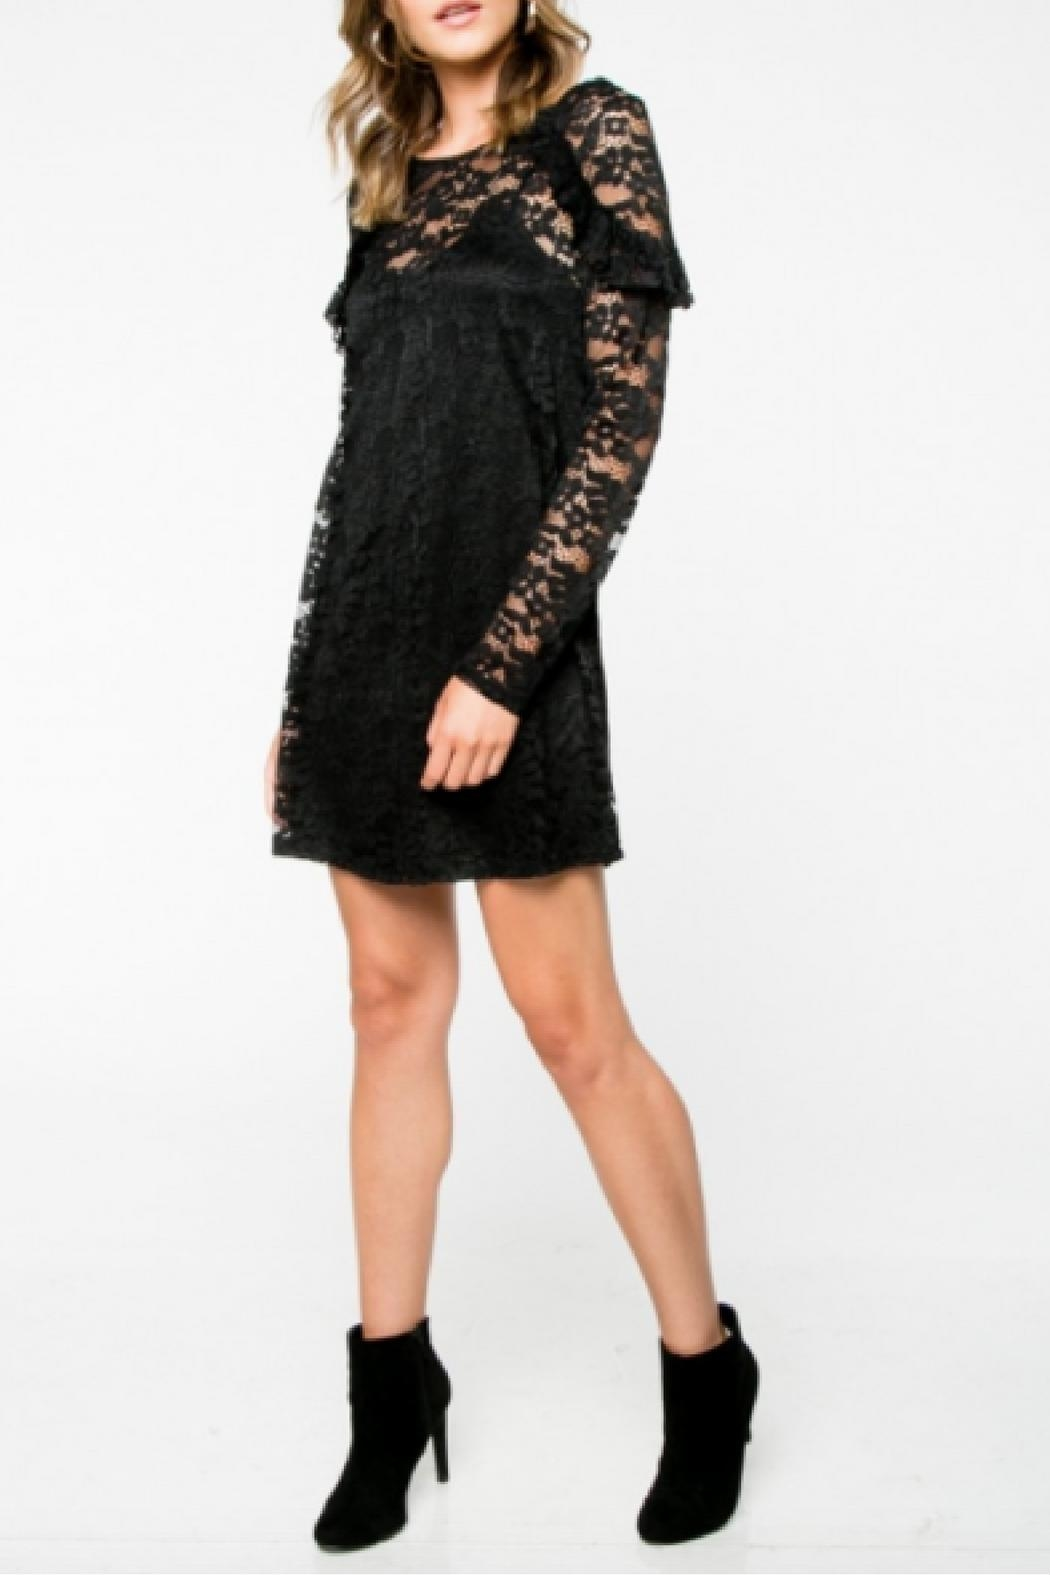 Everly Lace Black Dress - Side Cropped Image